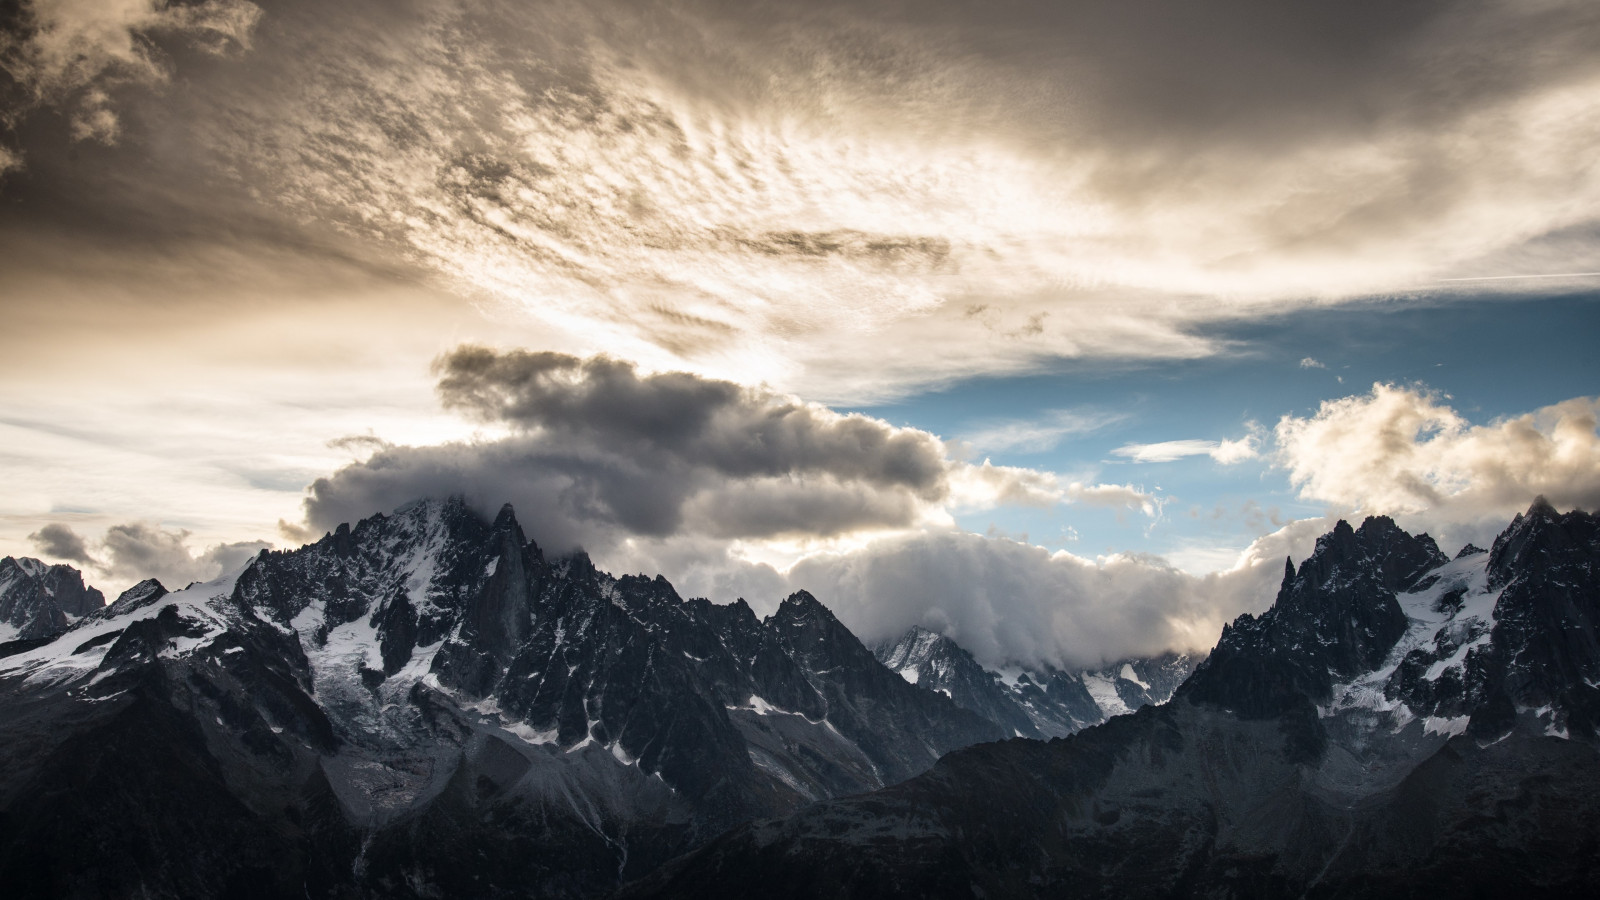 Mountain peaks, clouds, landscape from Chamonix wallpaper 1600x900